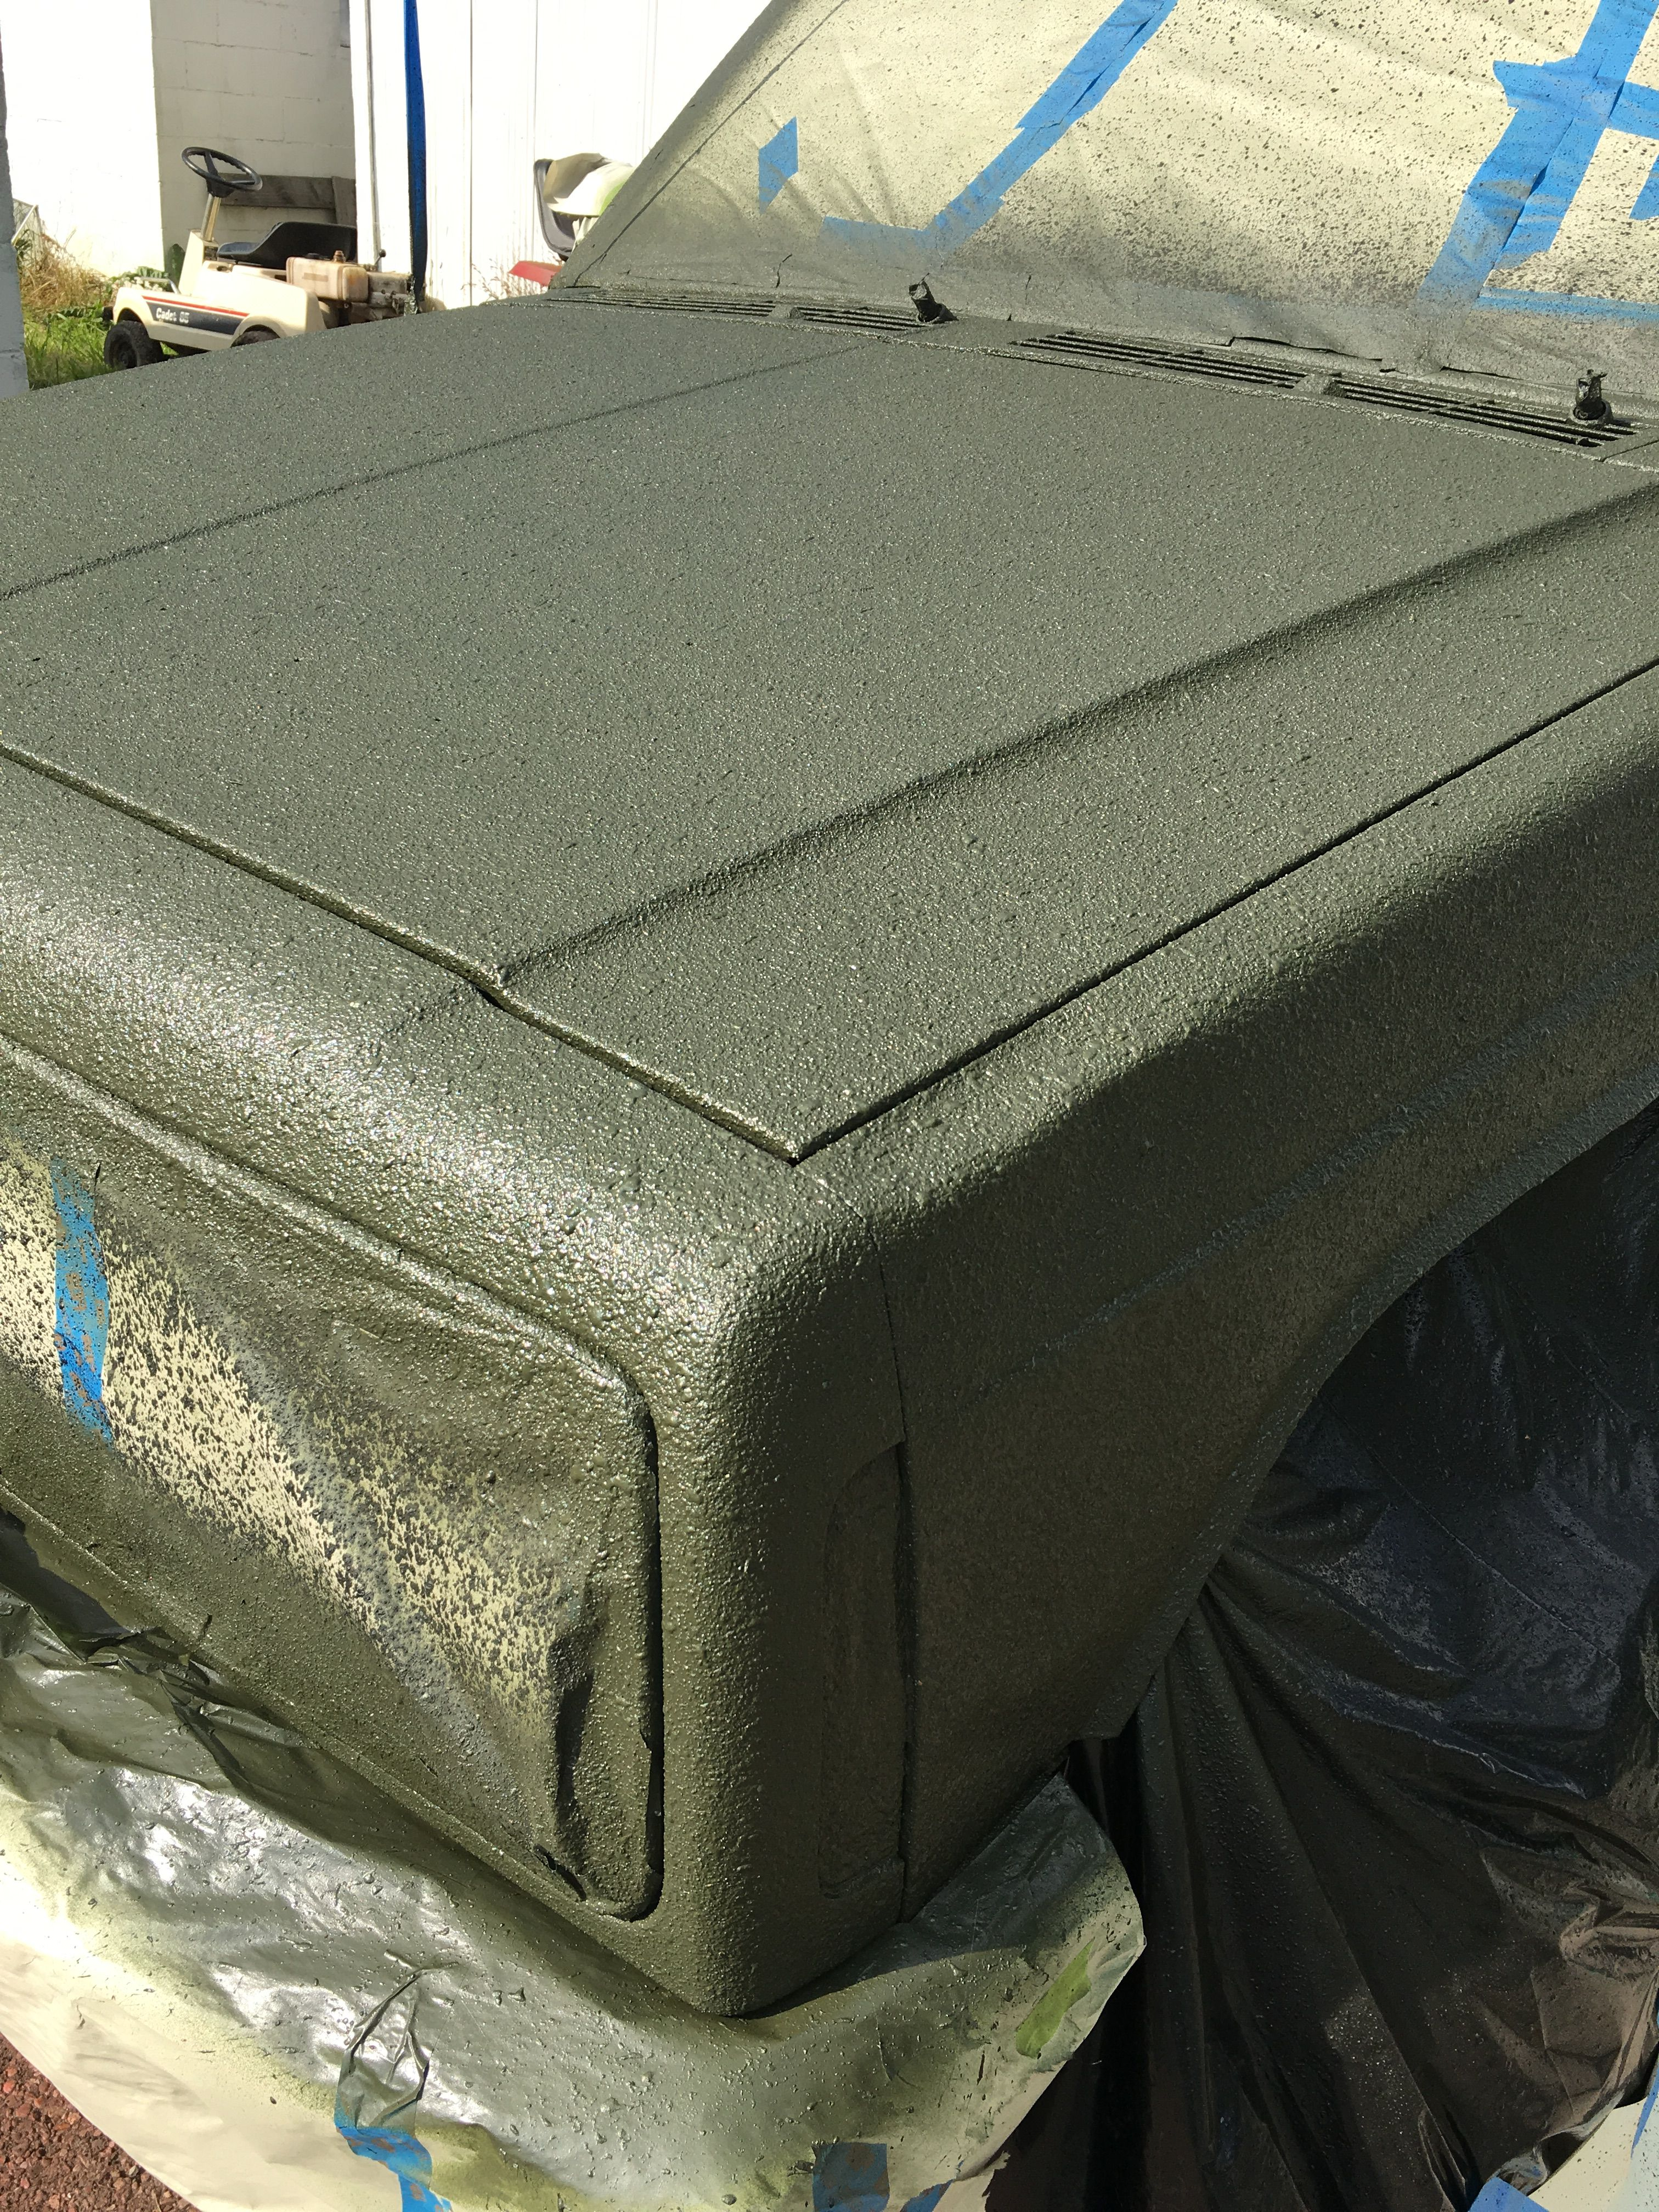 Paint after bed liner, two quarts of hunter green gloss